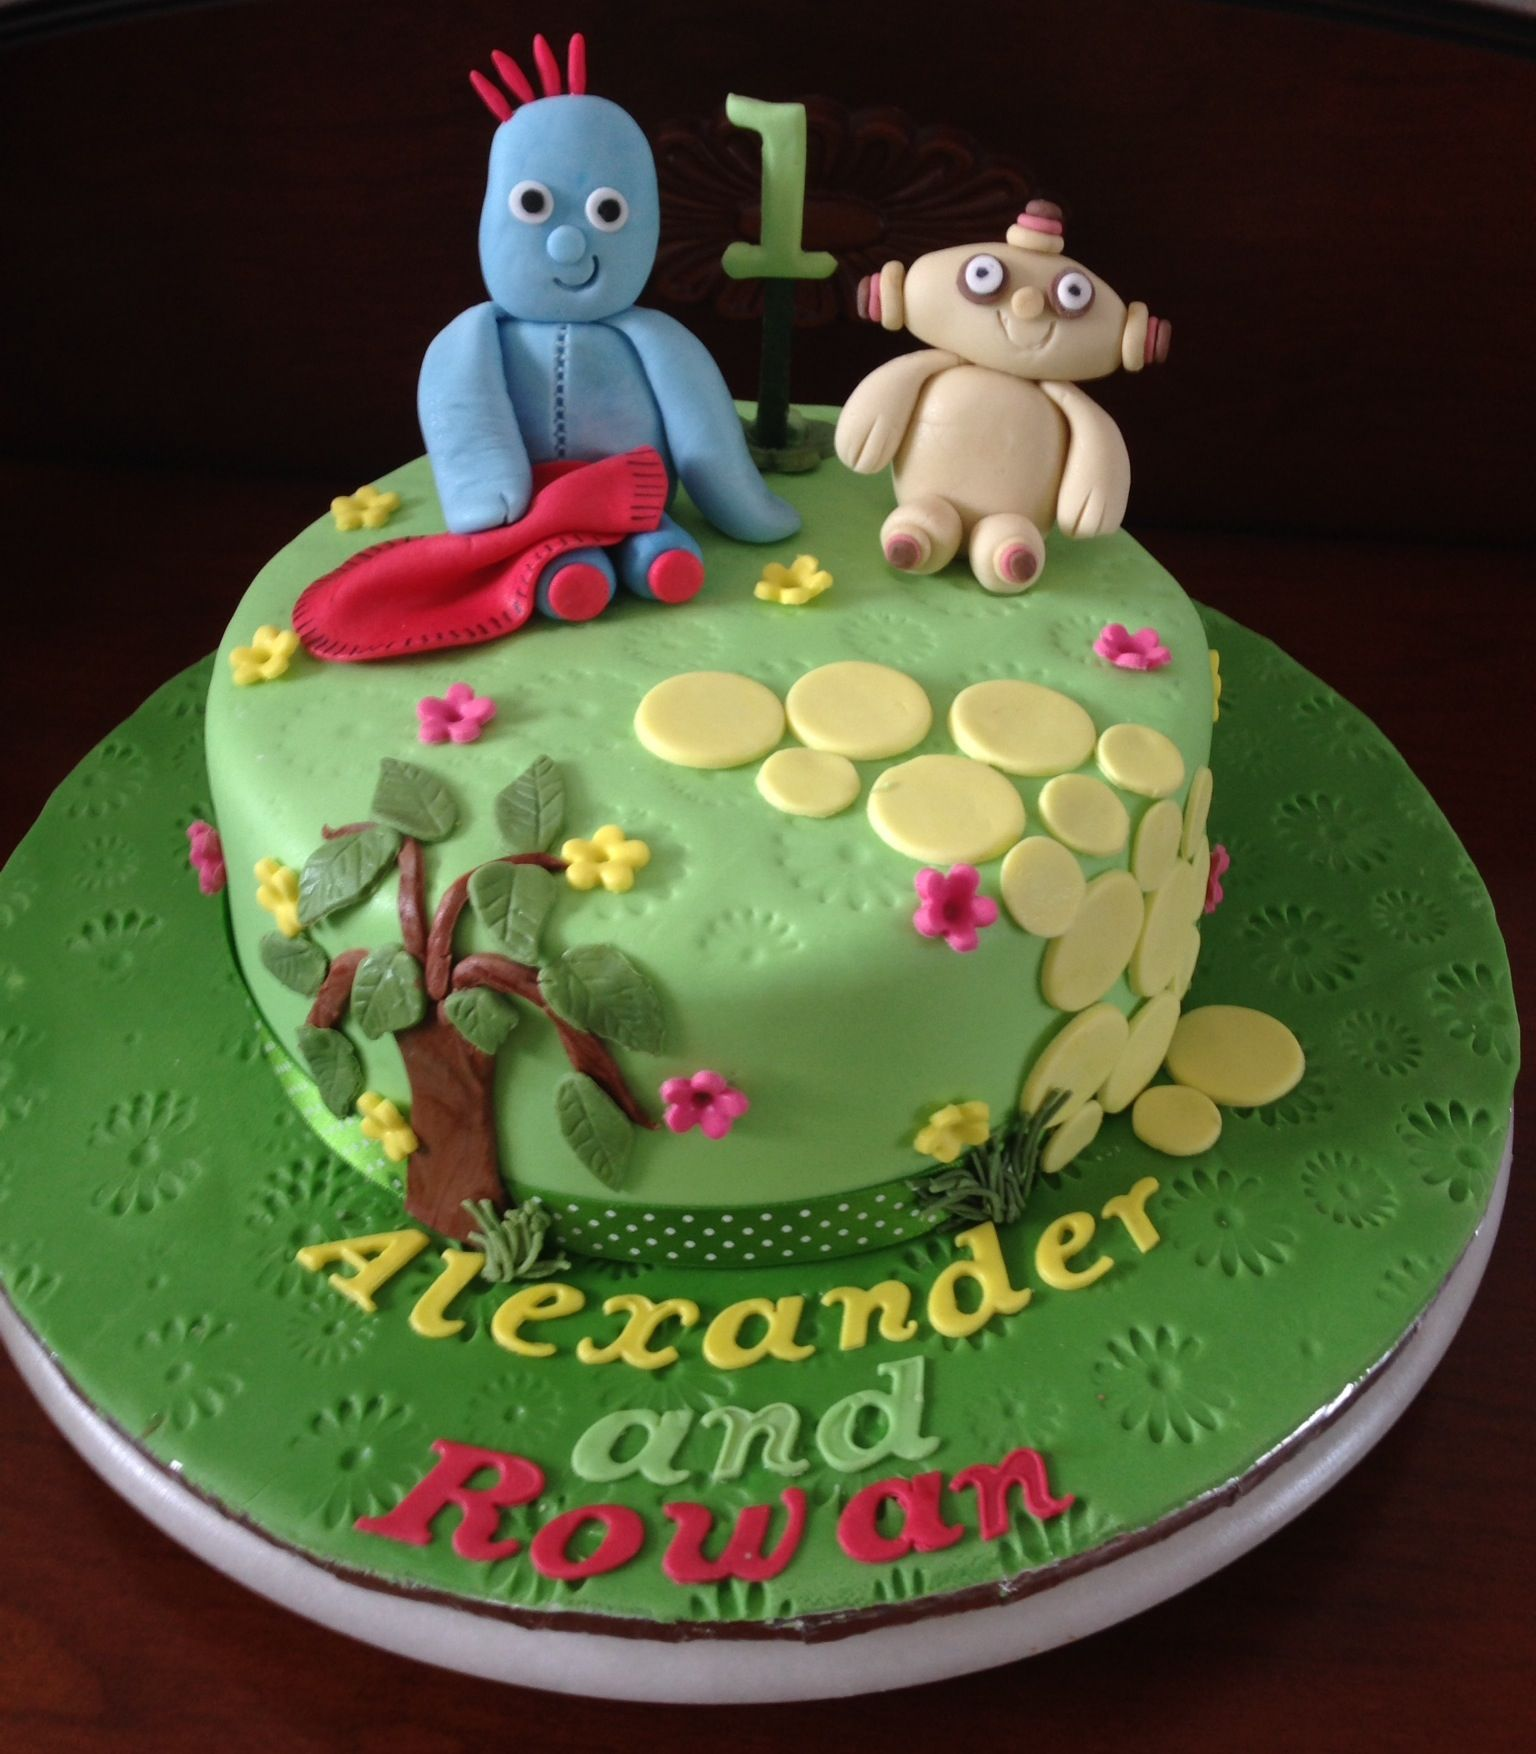 In the night garden. Twins 1st birthday cake. | My decorated cakes ...